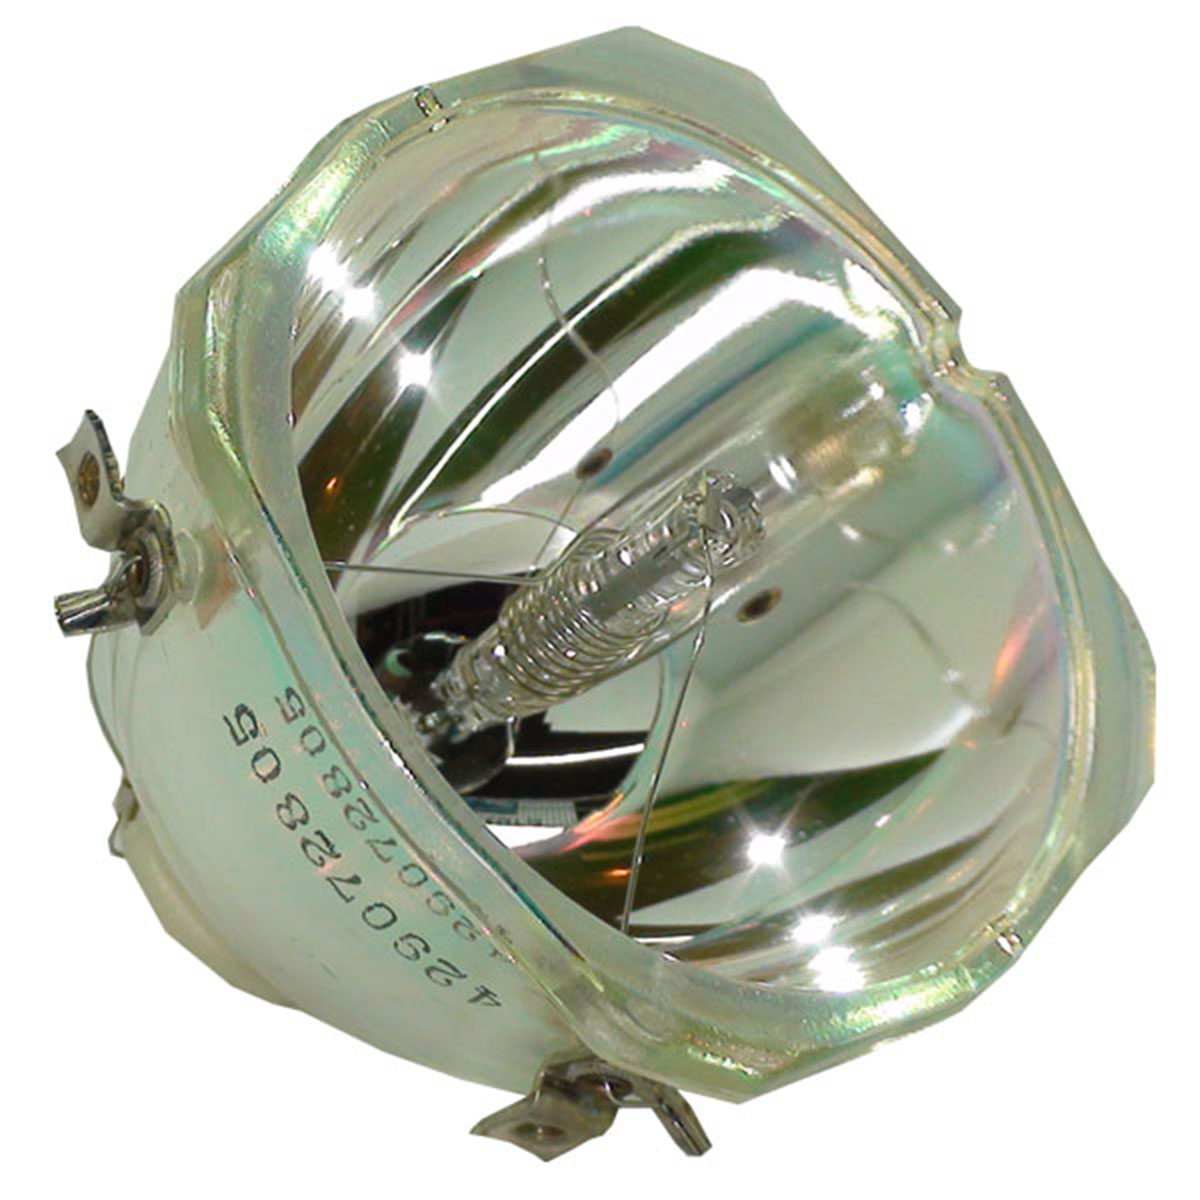 Lutema Platinum for Delta AV-3620 Projector Lamp (Bulb Only) - image 1 of 5